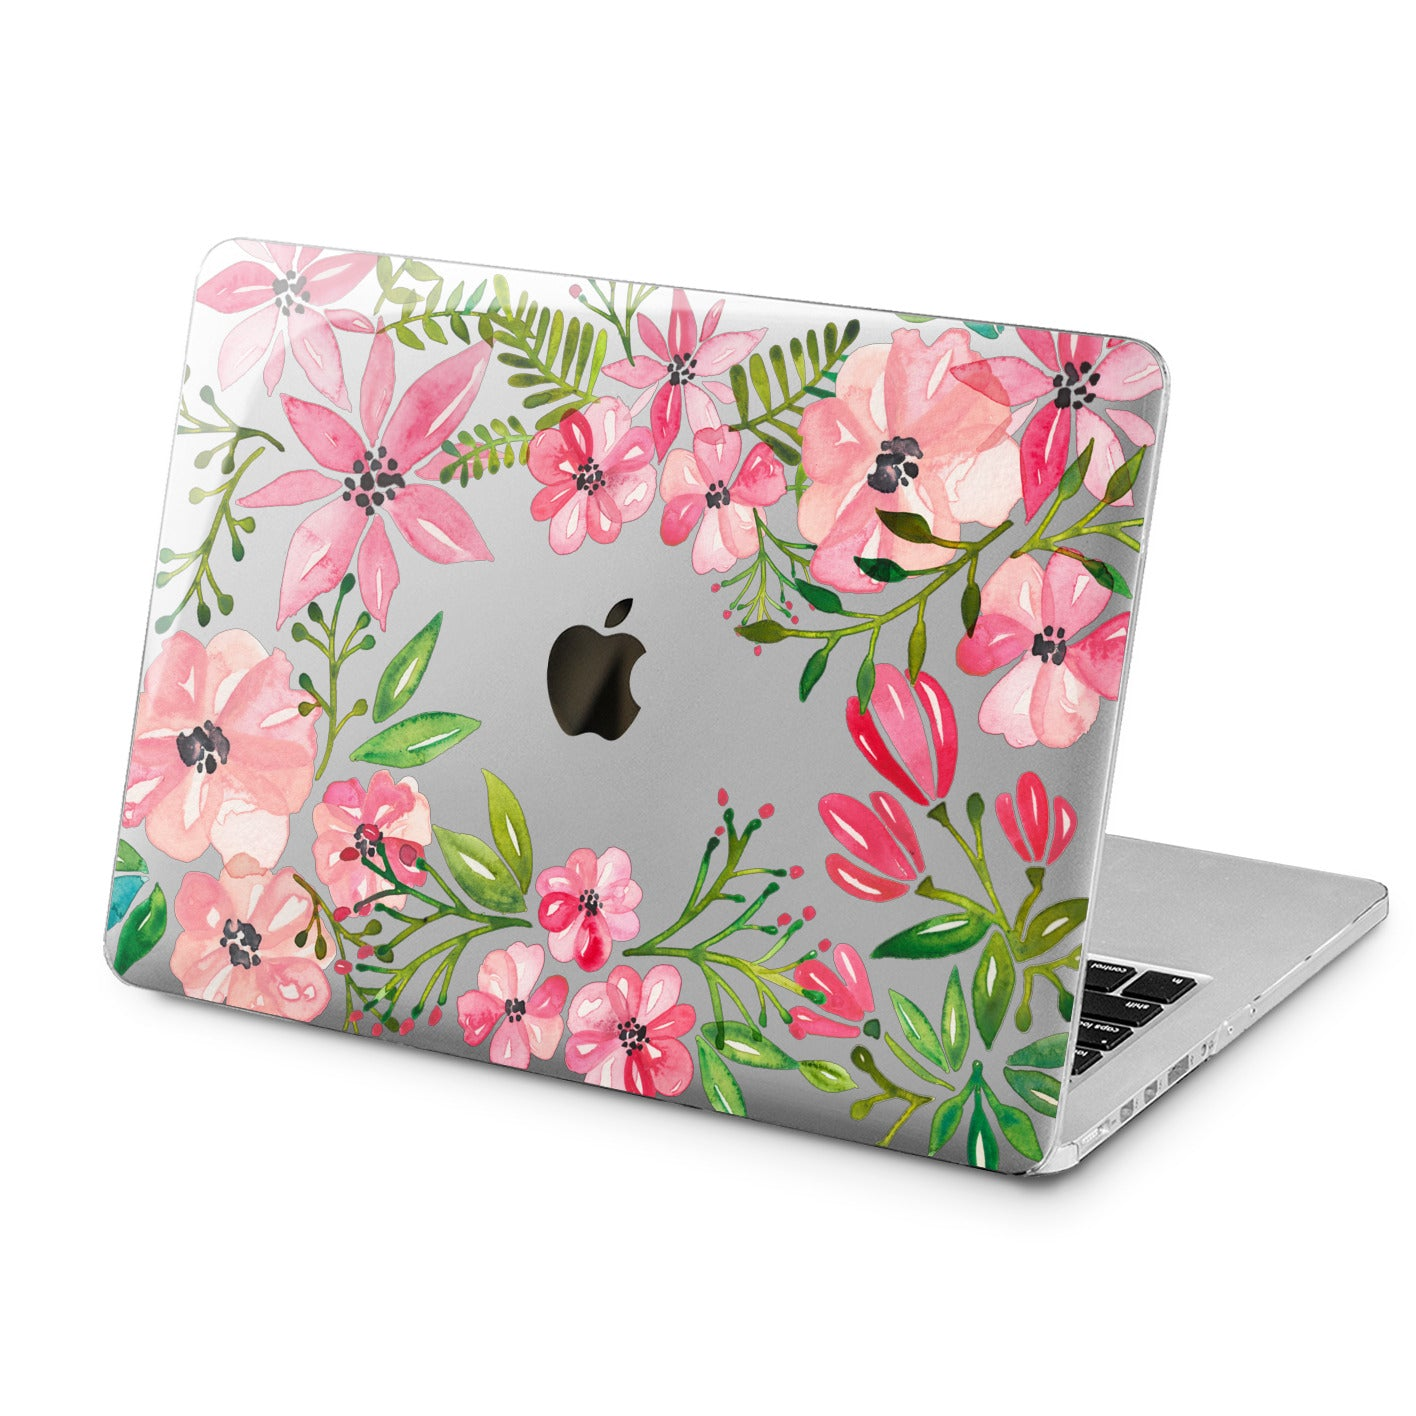 Lex Altern Lex Altern Pink Flowers Case for your Laptop Apple Macbook.